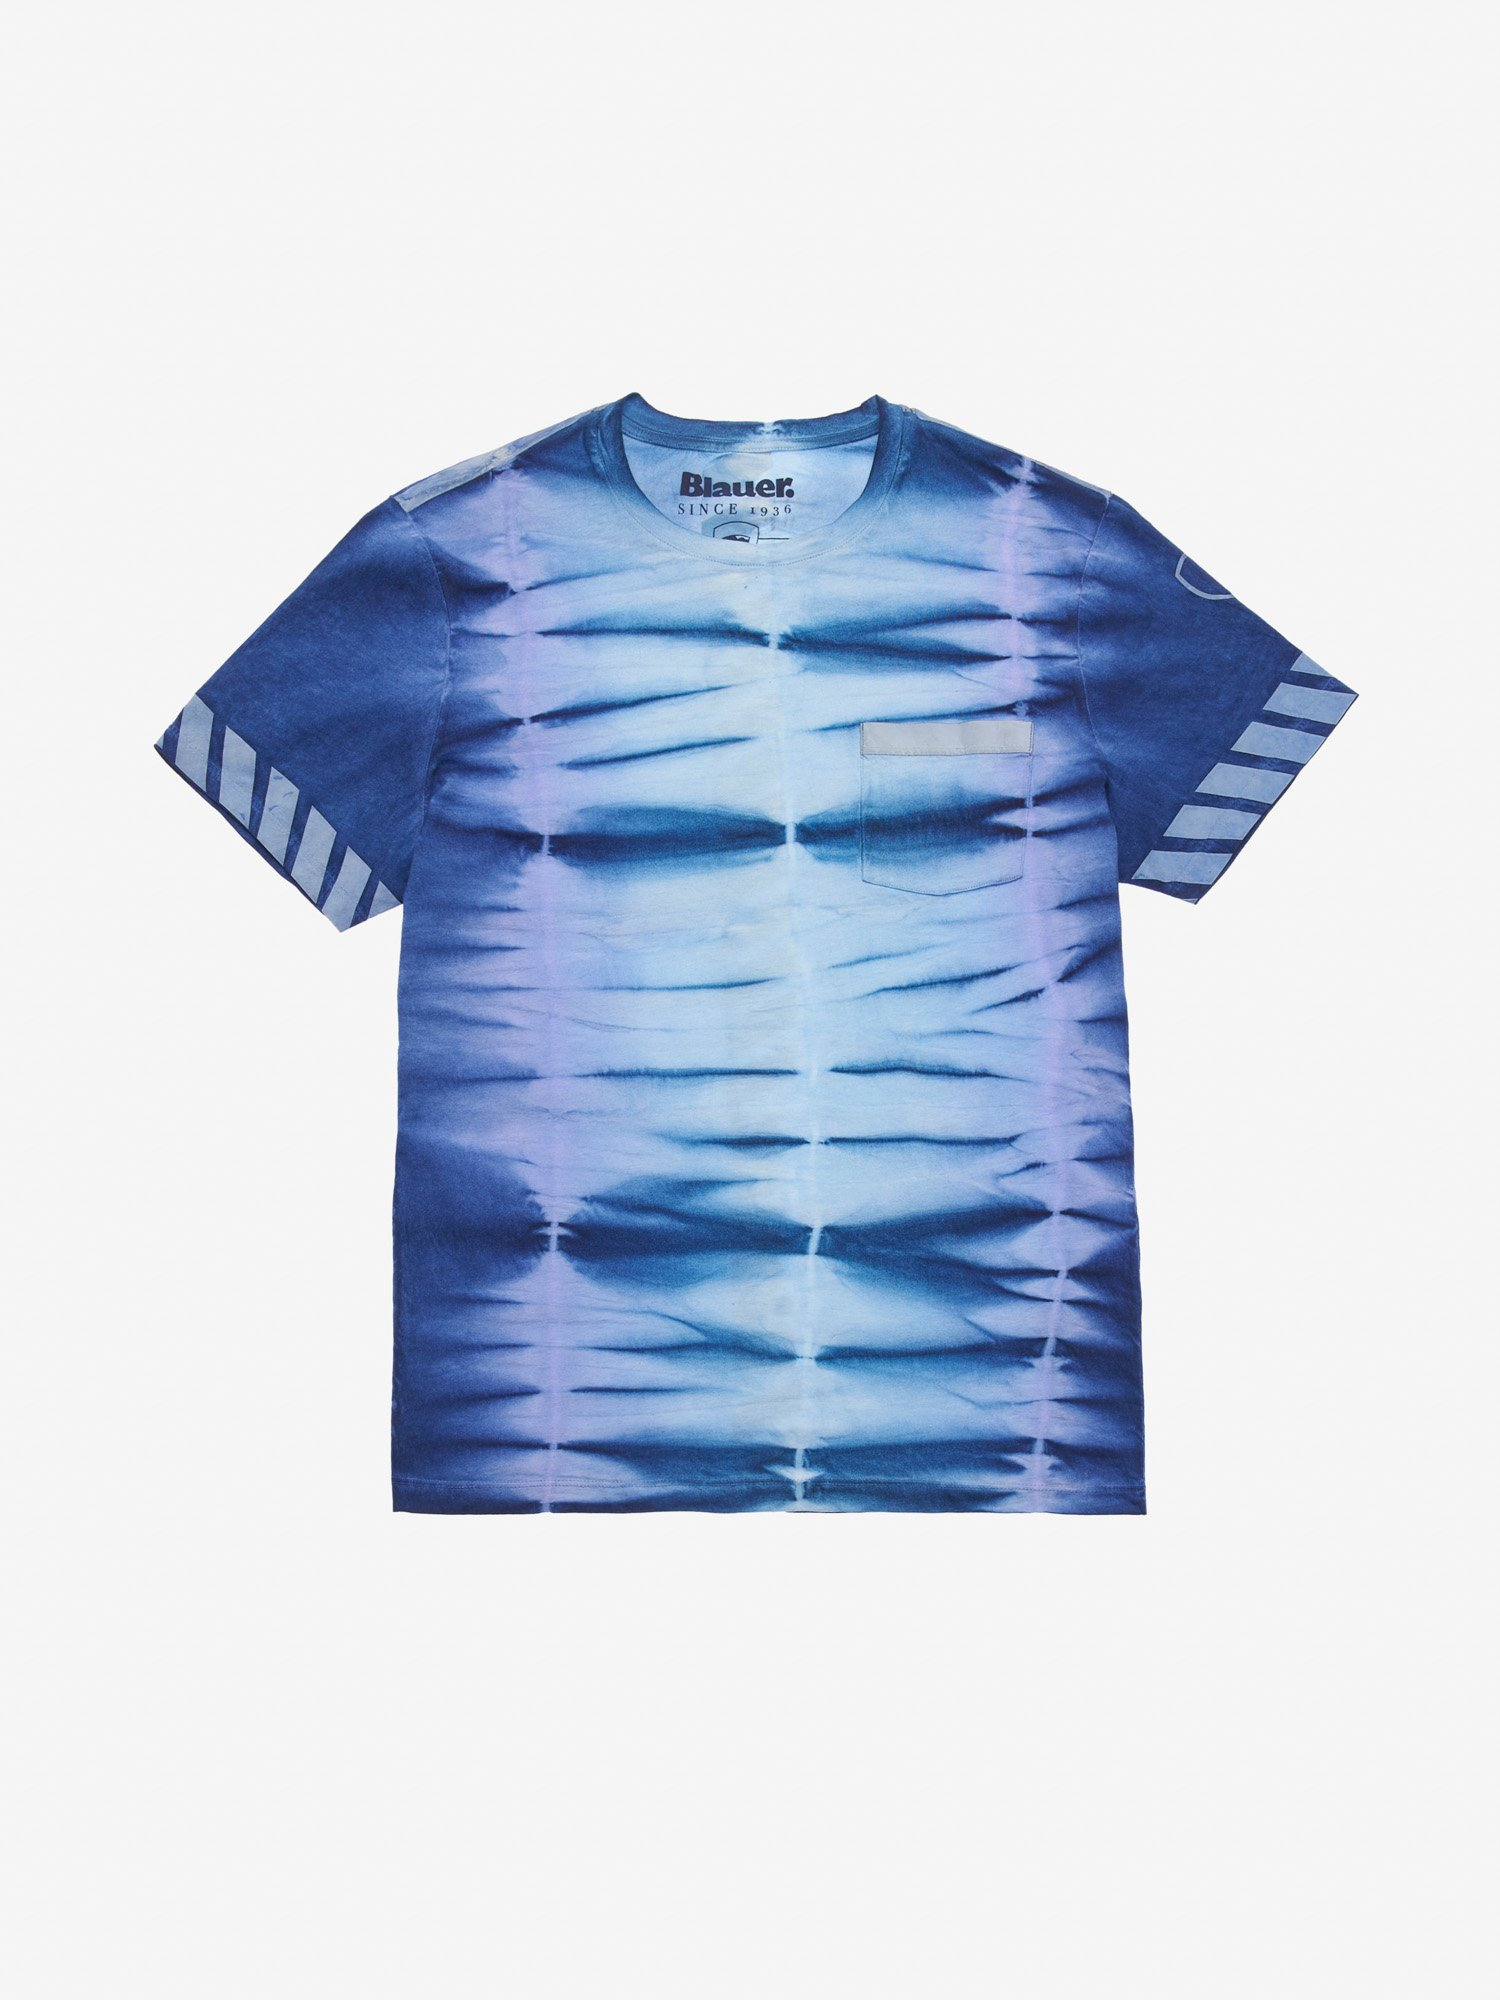 T-SHIRT UOMO TIE AND DYE REFLECTIVE - Blauer